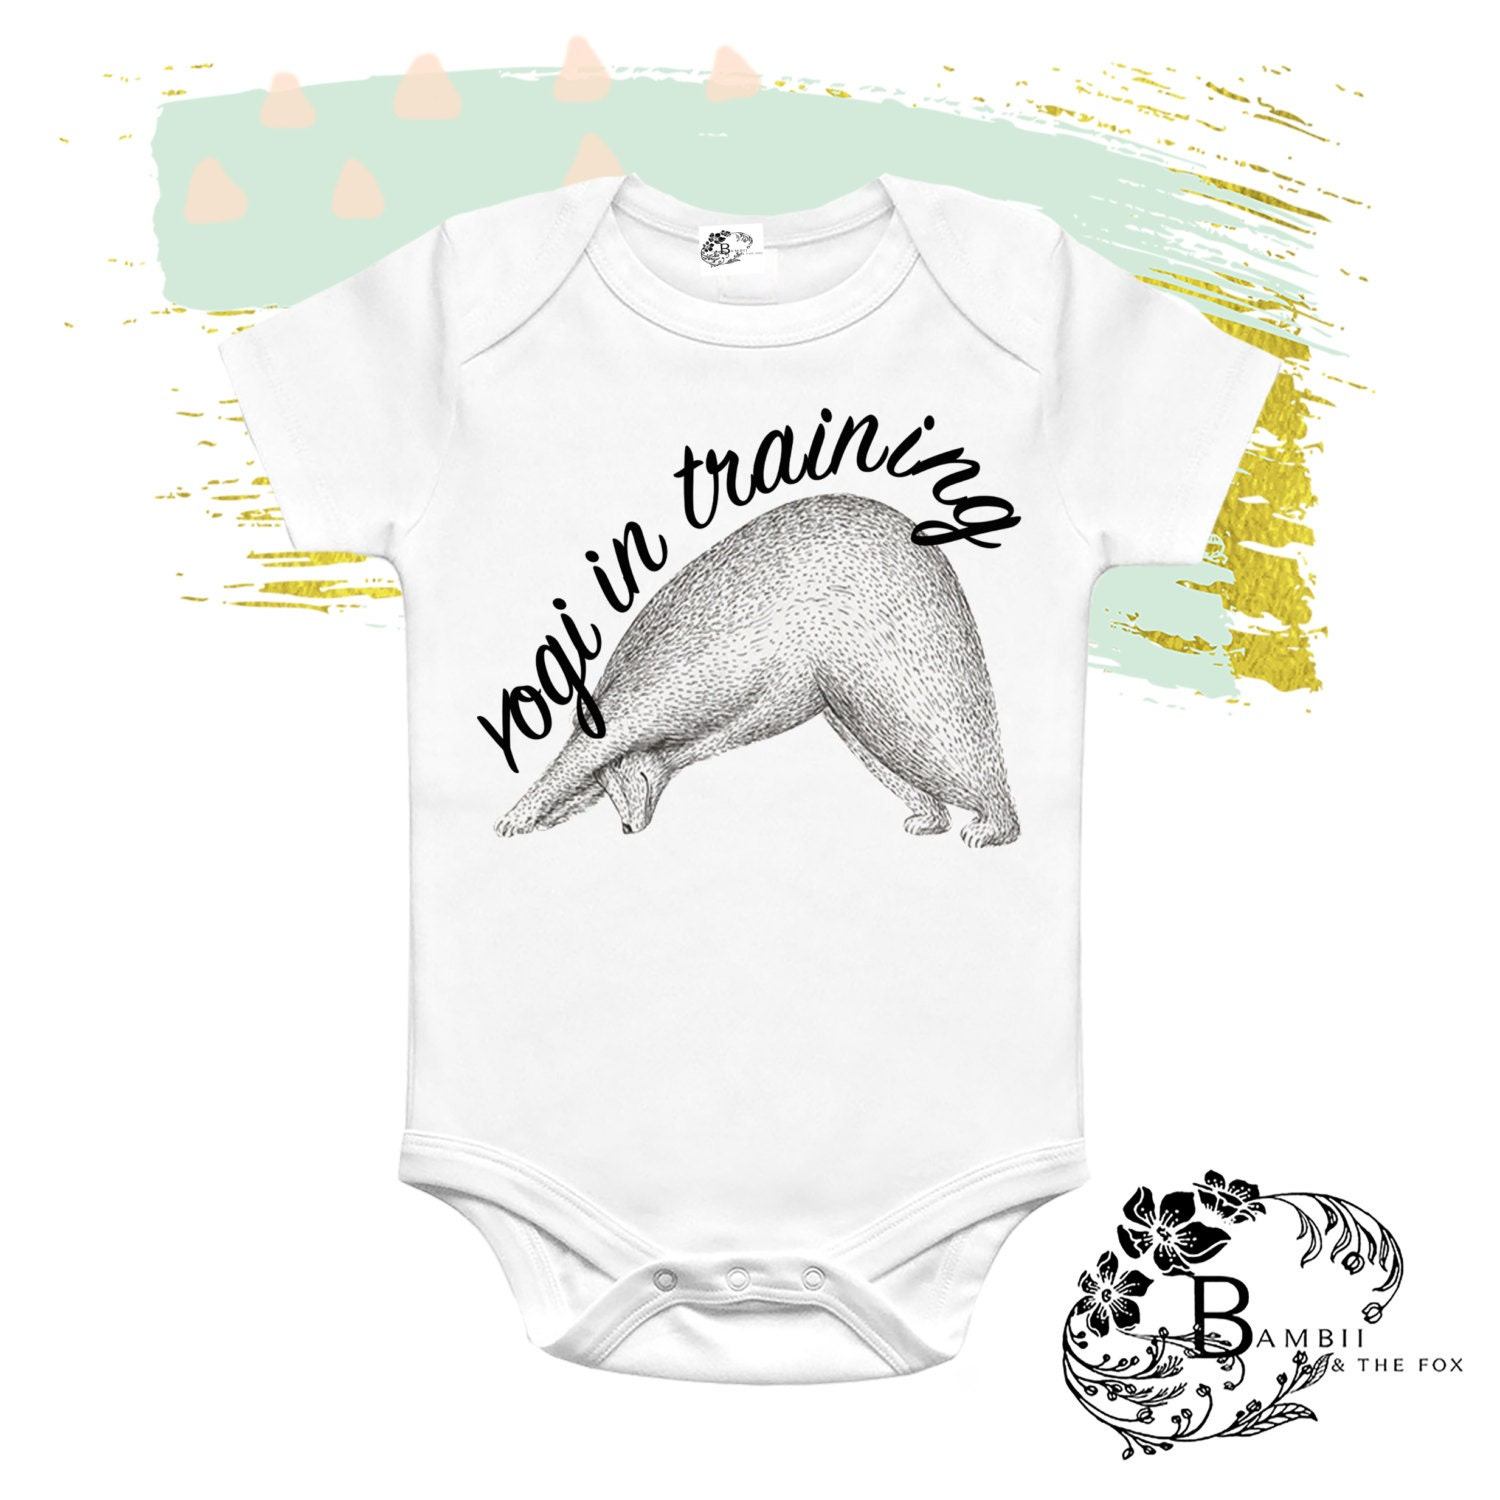 Baby Gifts Yoga : Yoga baby bodysuit yogi in training outfit workout